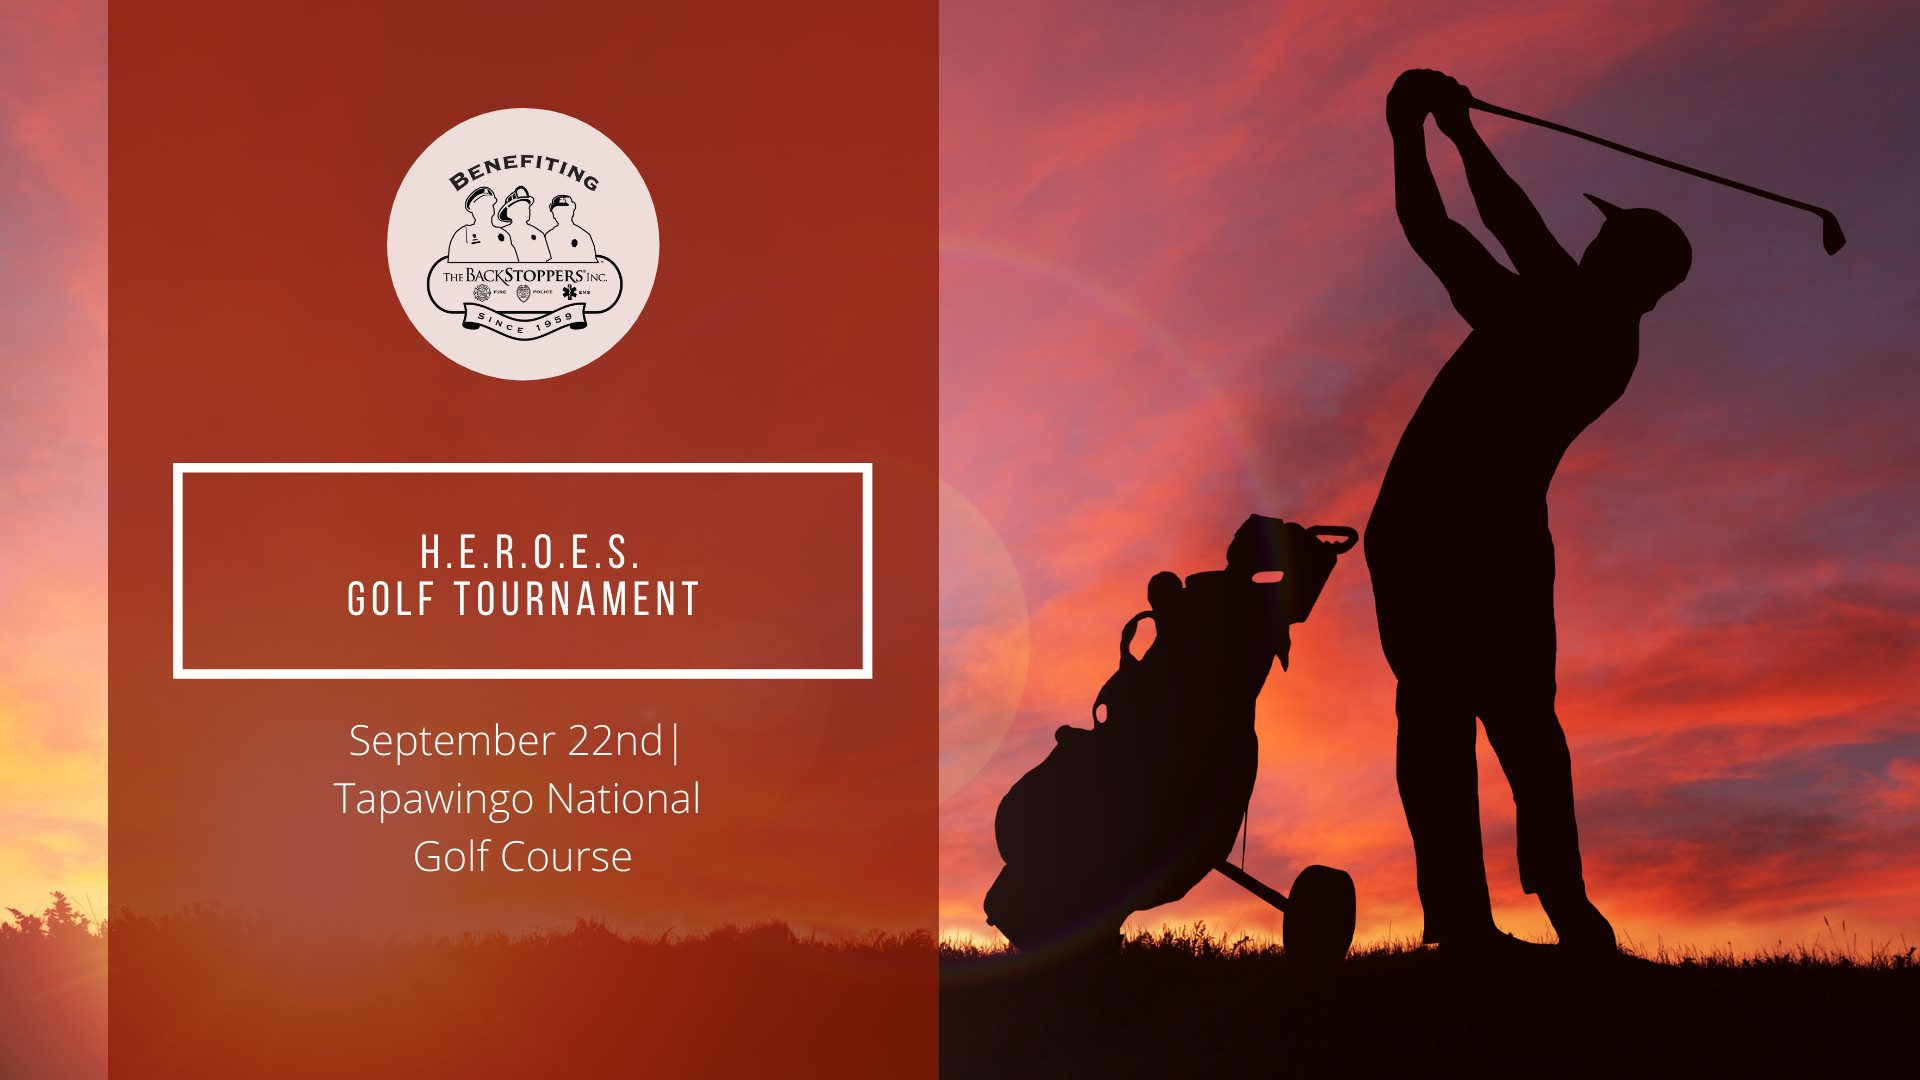 Silhouette of golfer in red sunset HEROES Golf tournament banner